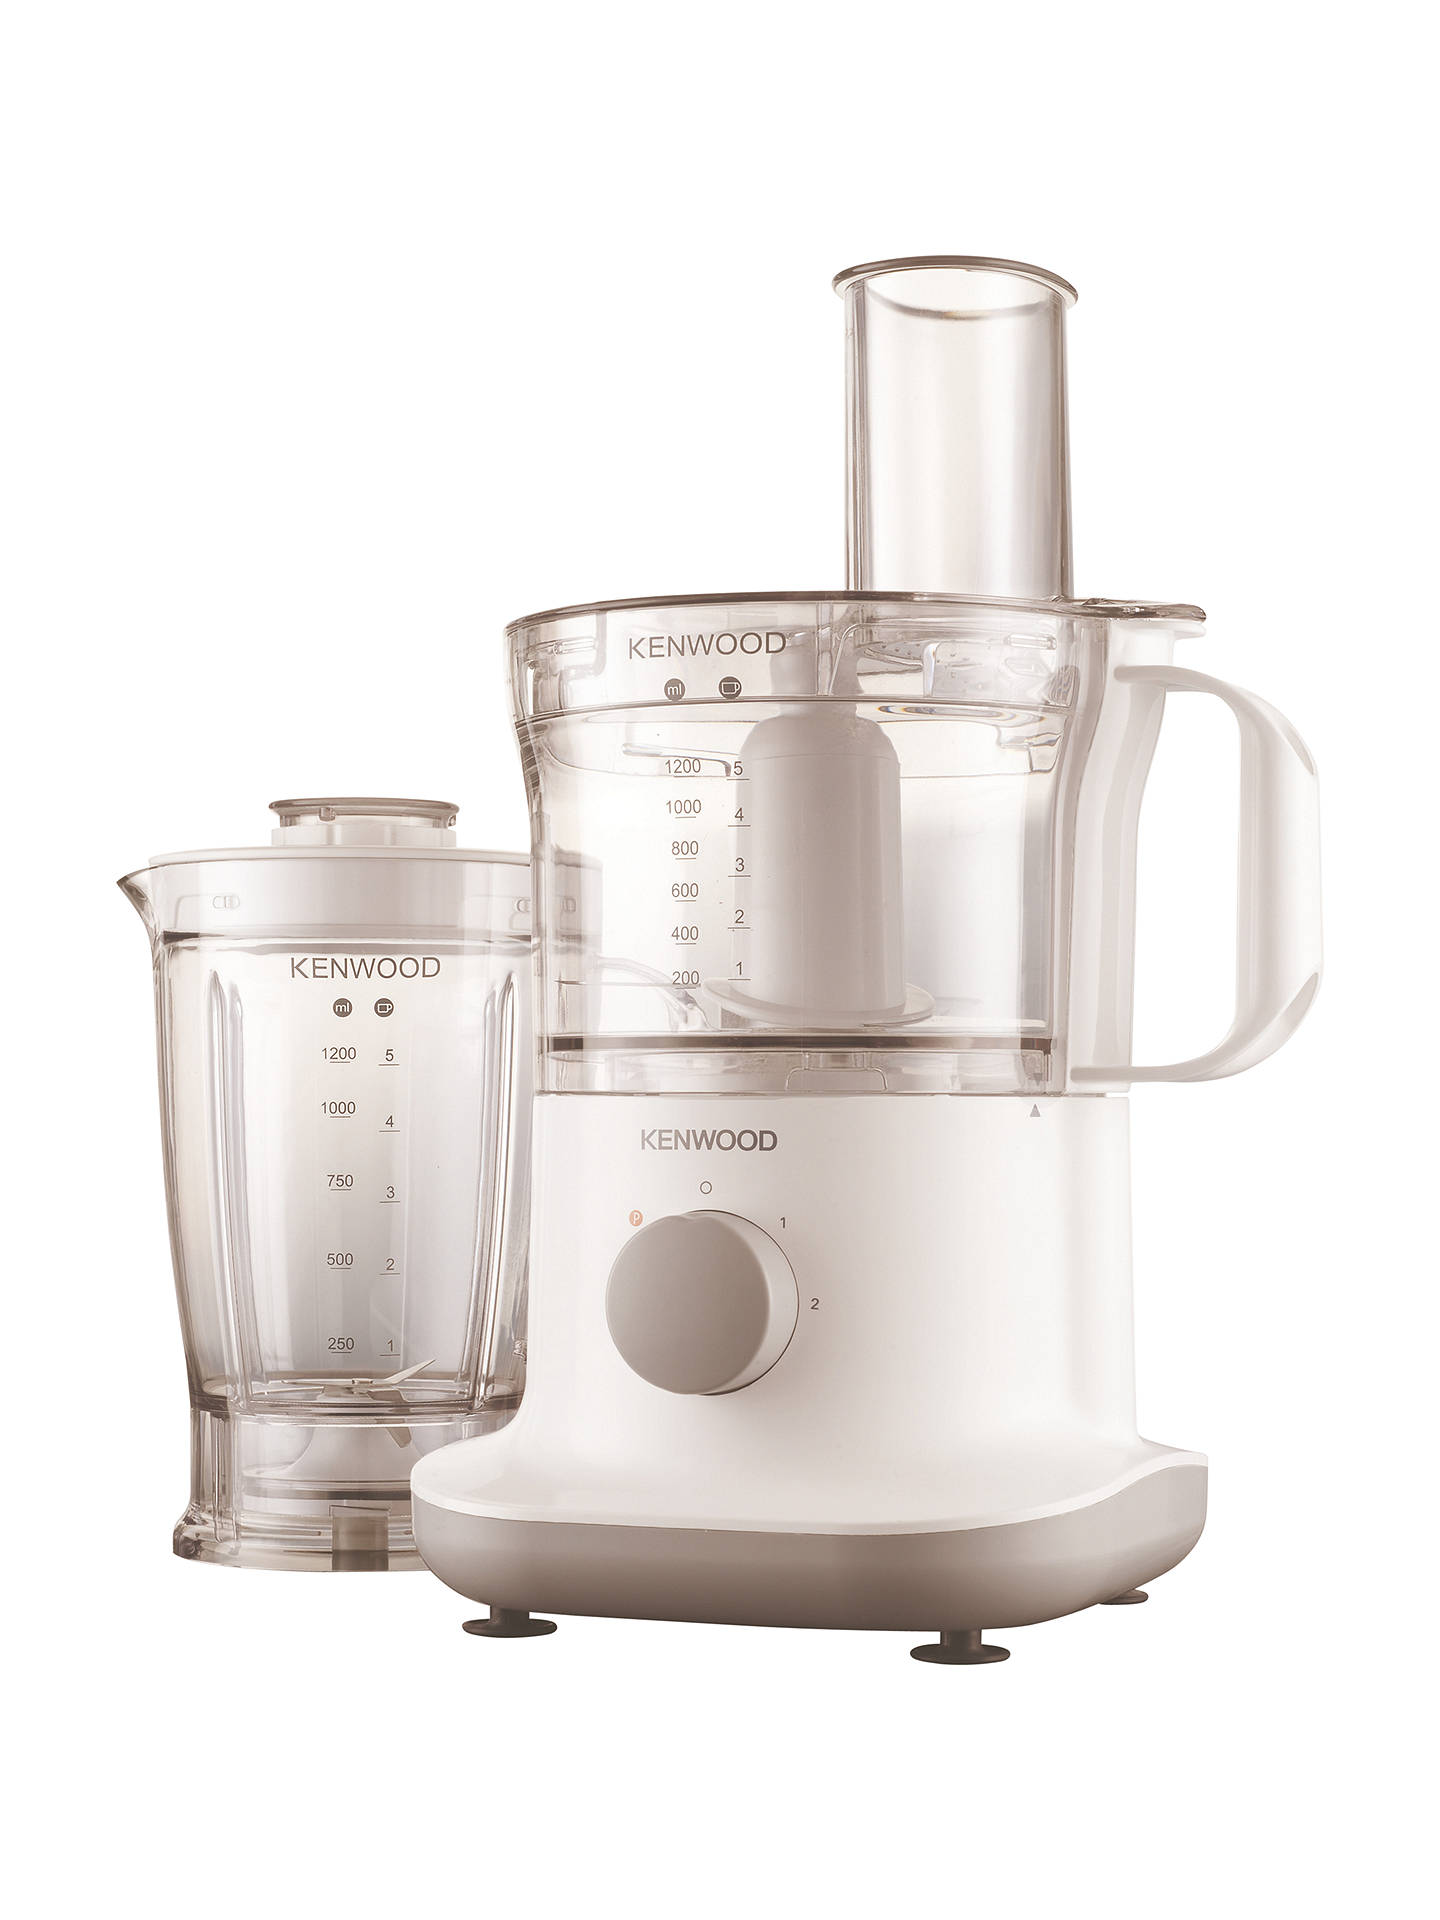 Kenwood FPP220 Multipro Compact Food Processor, White at John Lewis & Partners